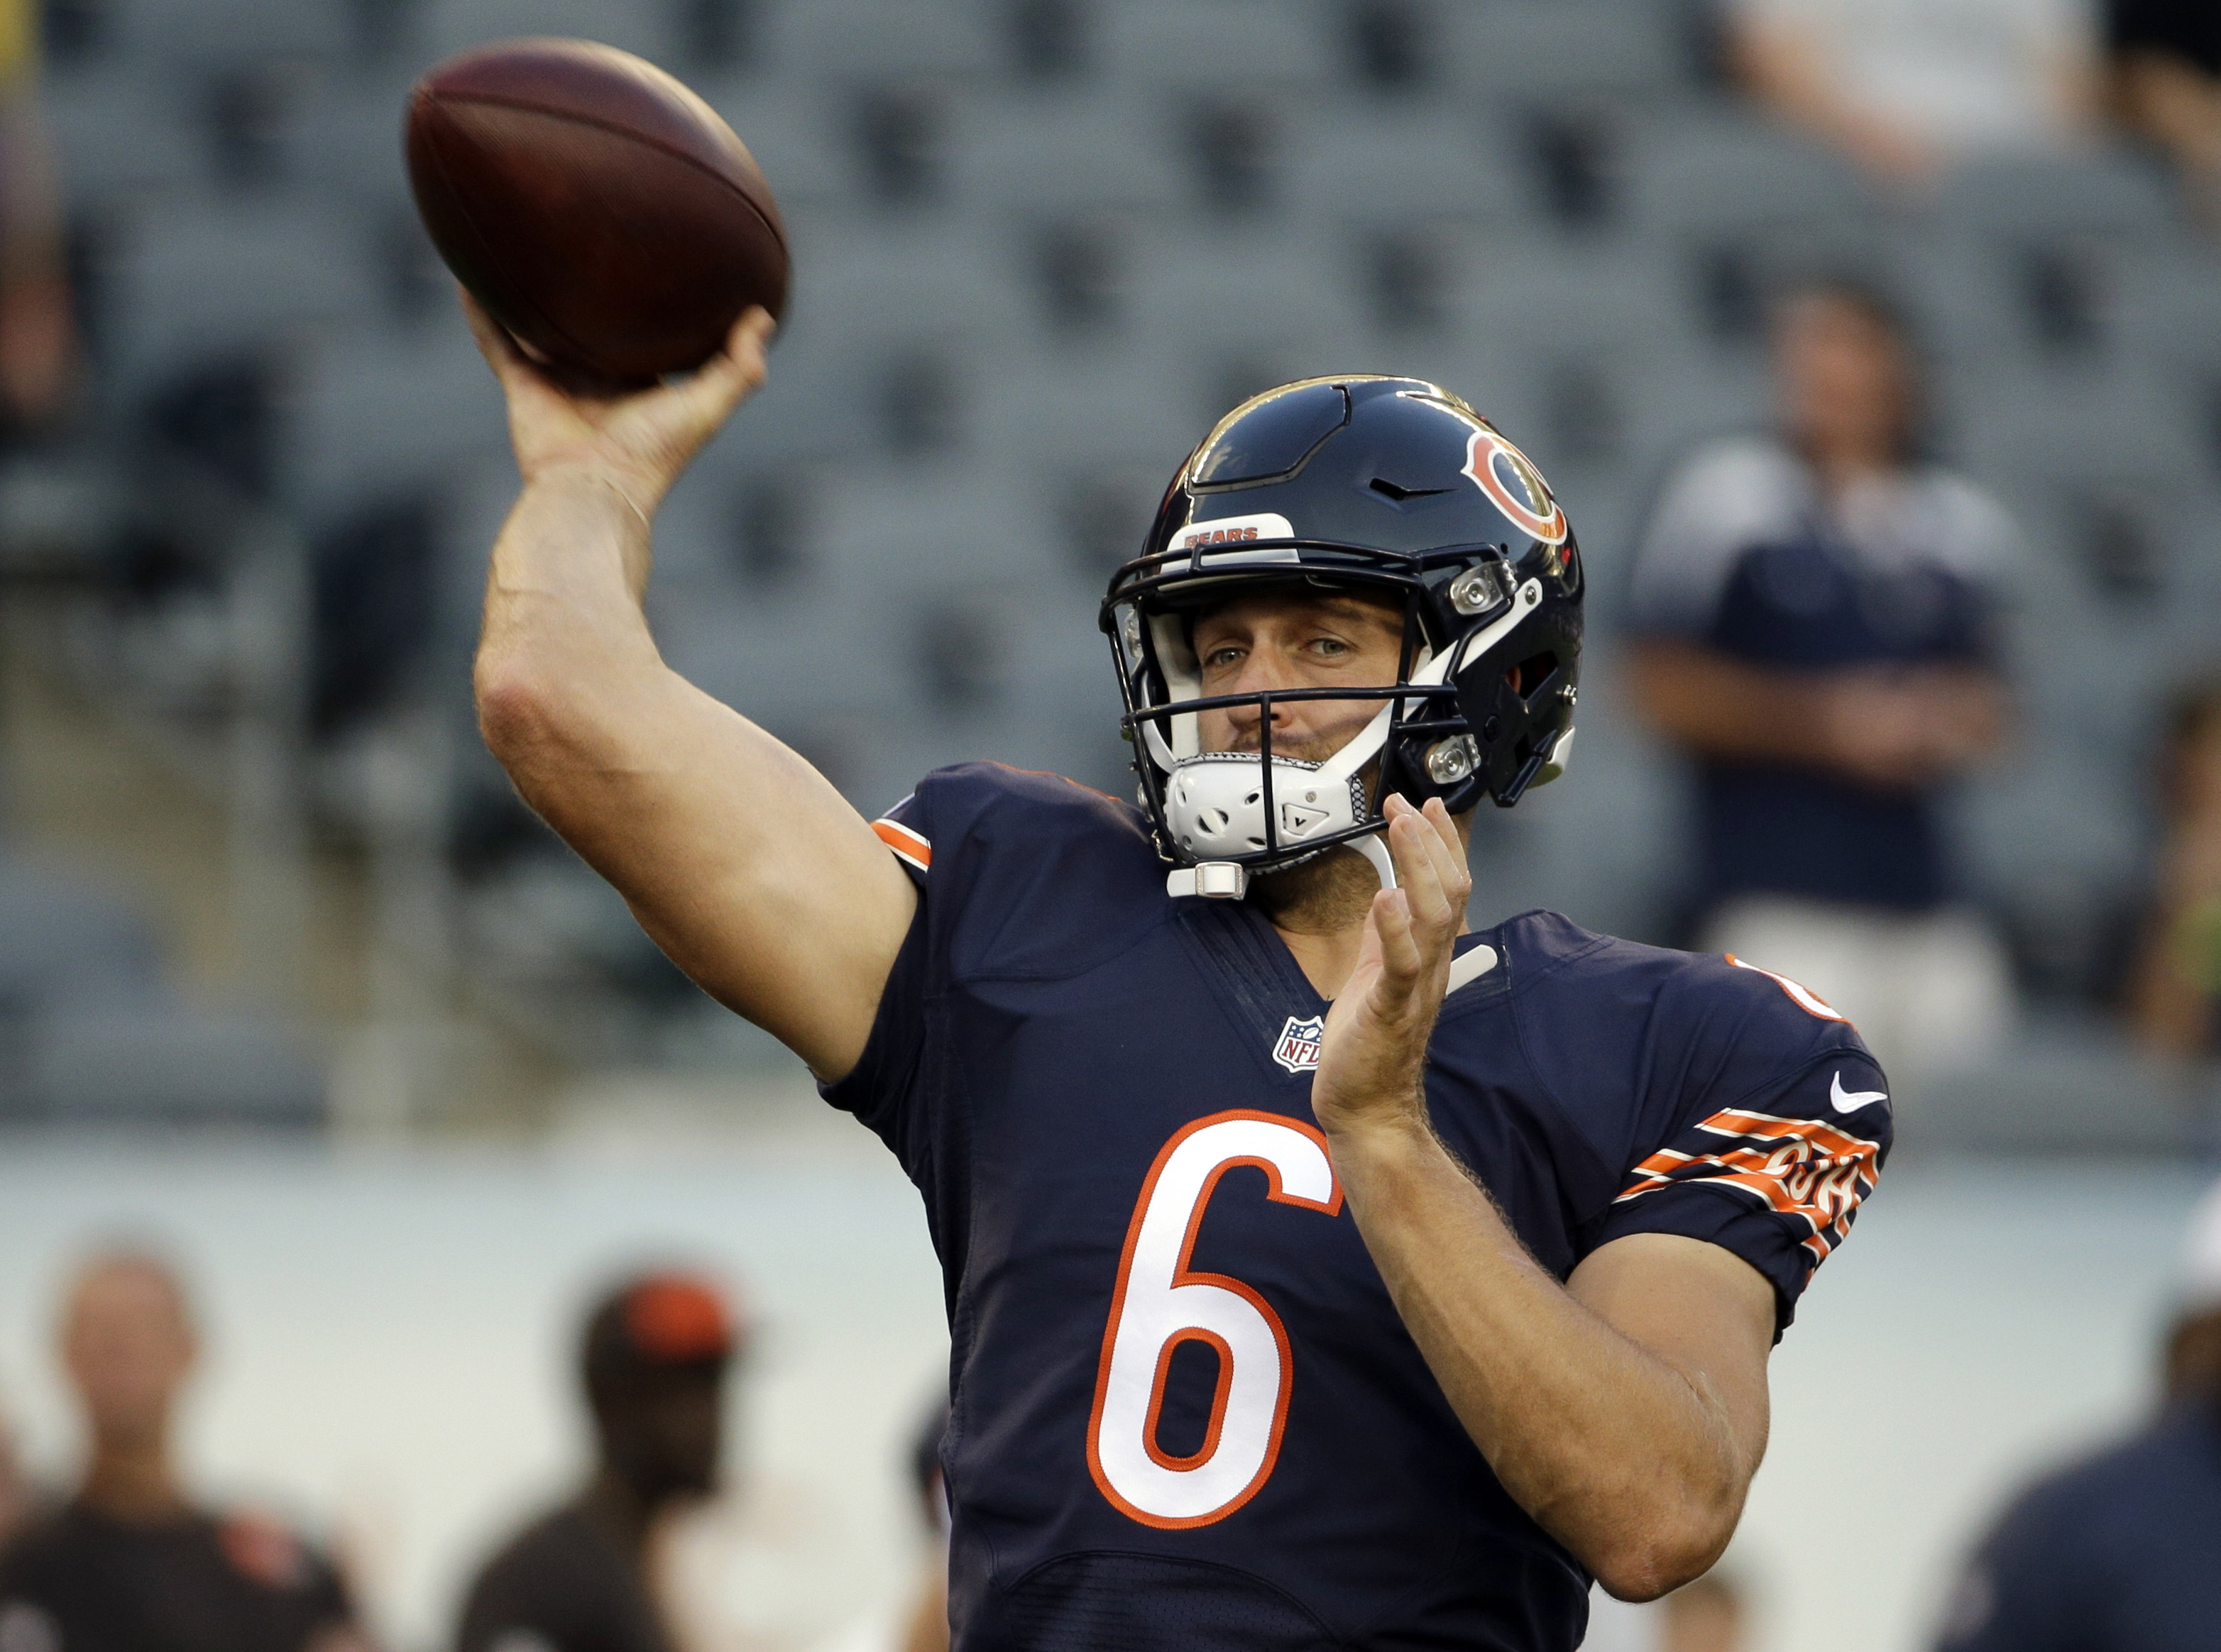 FILE - In this Sept. 3, 2015 file photo, Chicago Bears quarterback Jay Cutler warms up before an NFL preseason football game against the Cleveland Browns in Chicago. Cutler and the Bears open the regular season Sunday, Sept. 13 hosting the Green Bay Packe